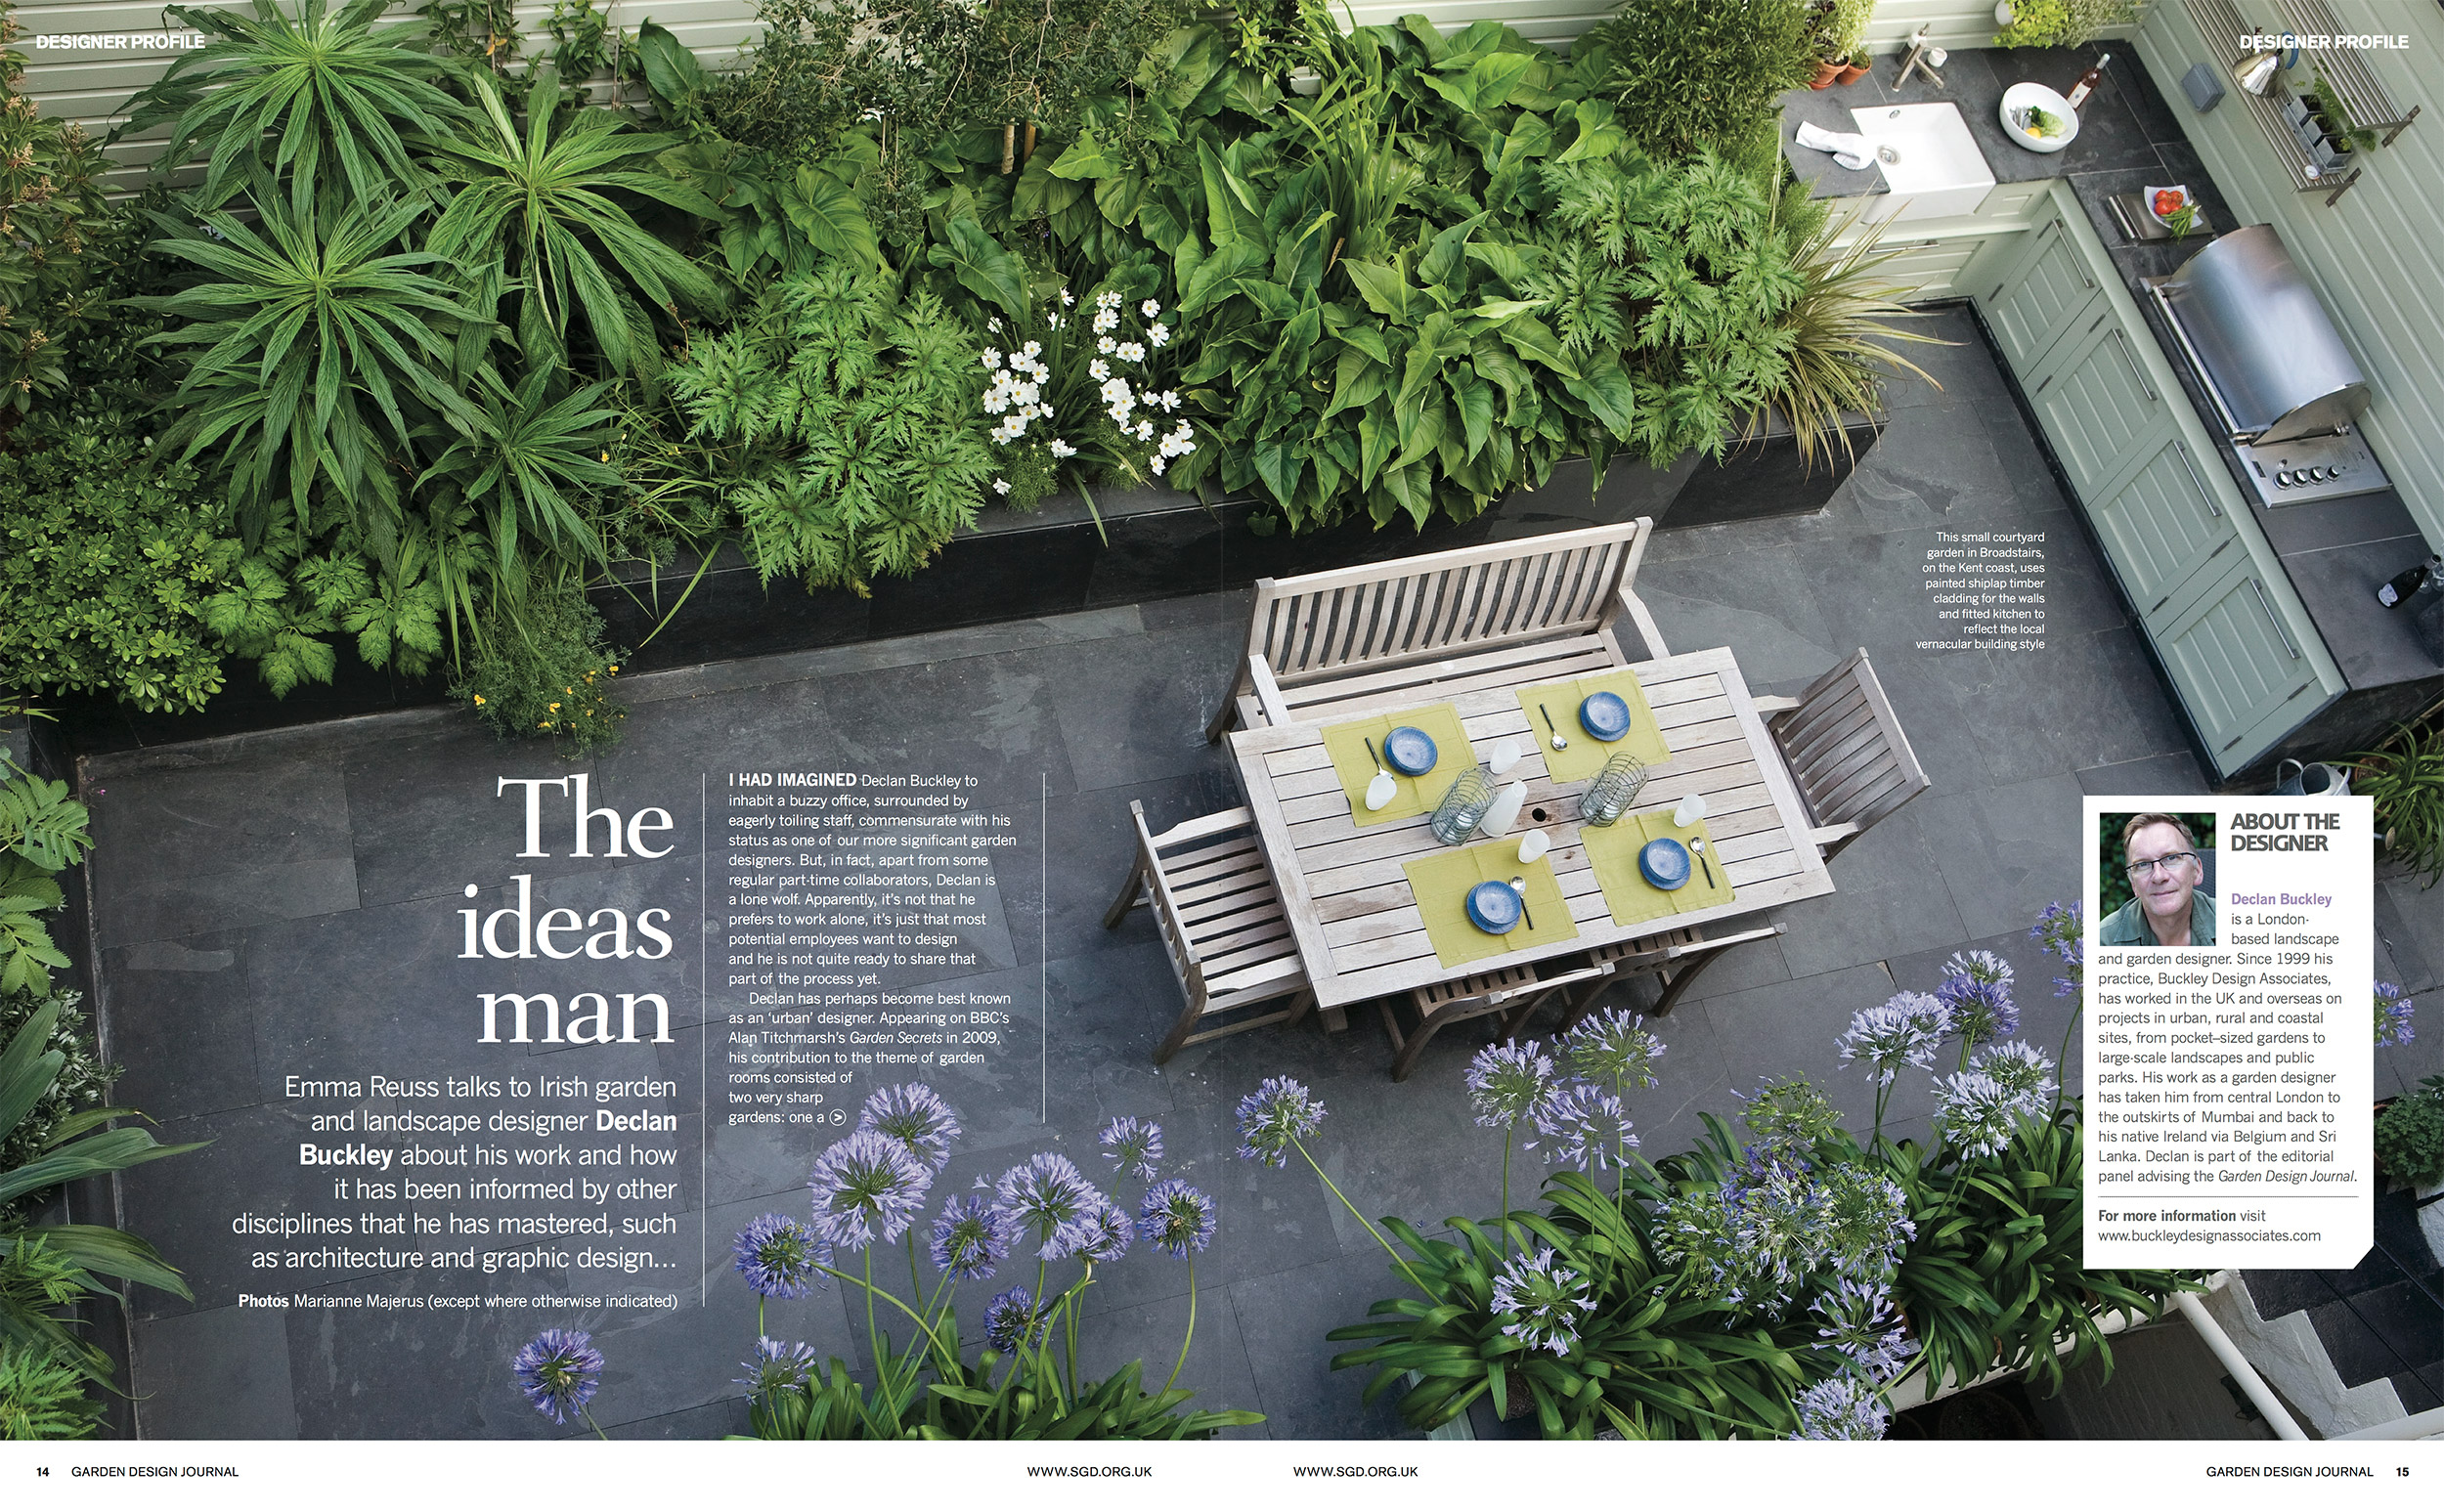 Merveilleux Garden Design Journal Feature Buckley Design   Buckley Design Associates. U003e